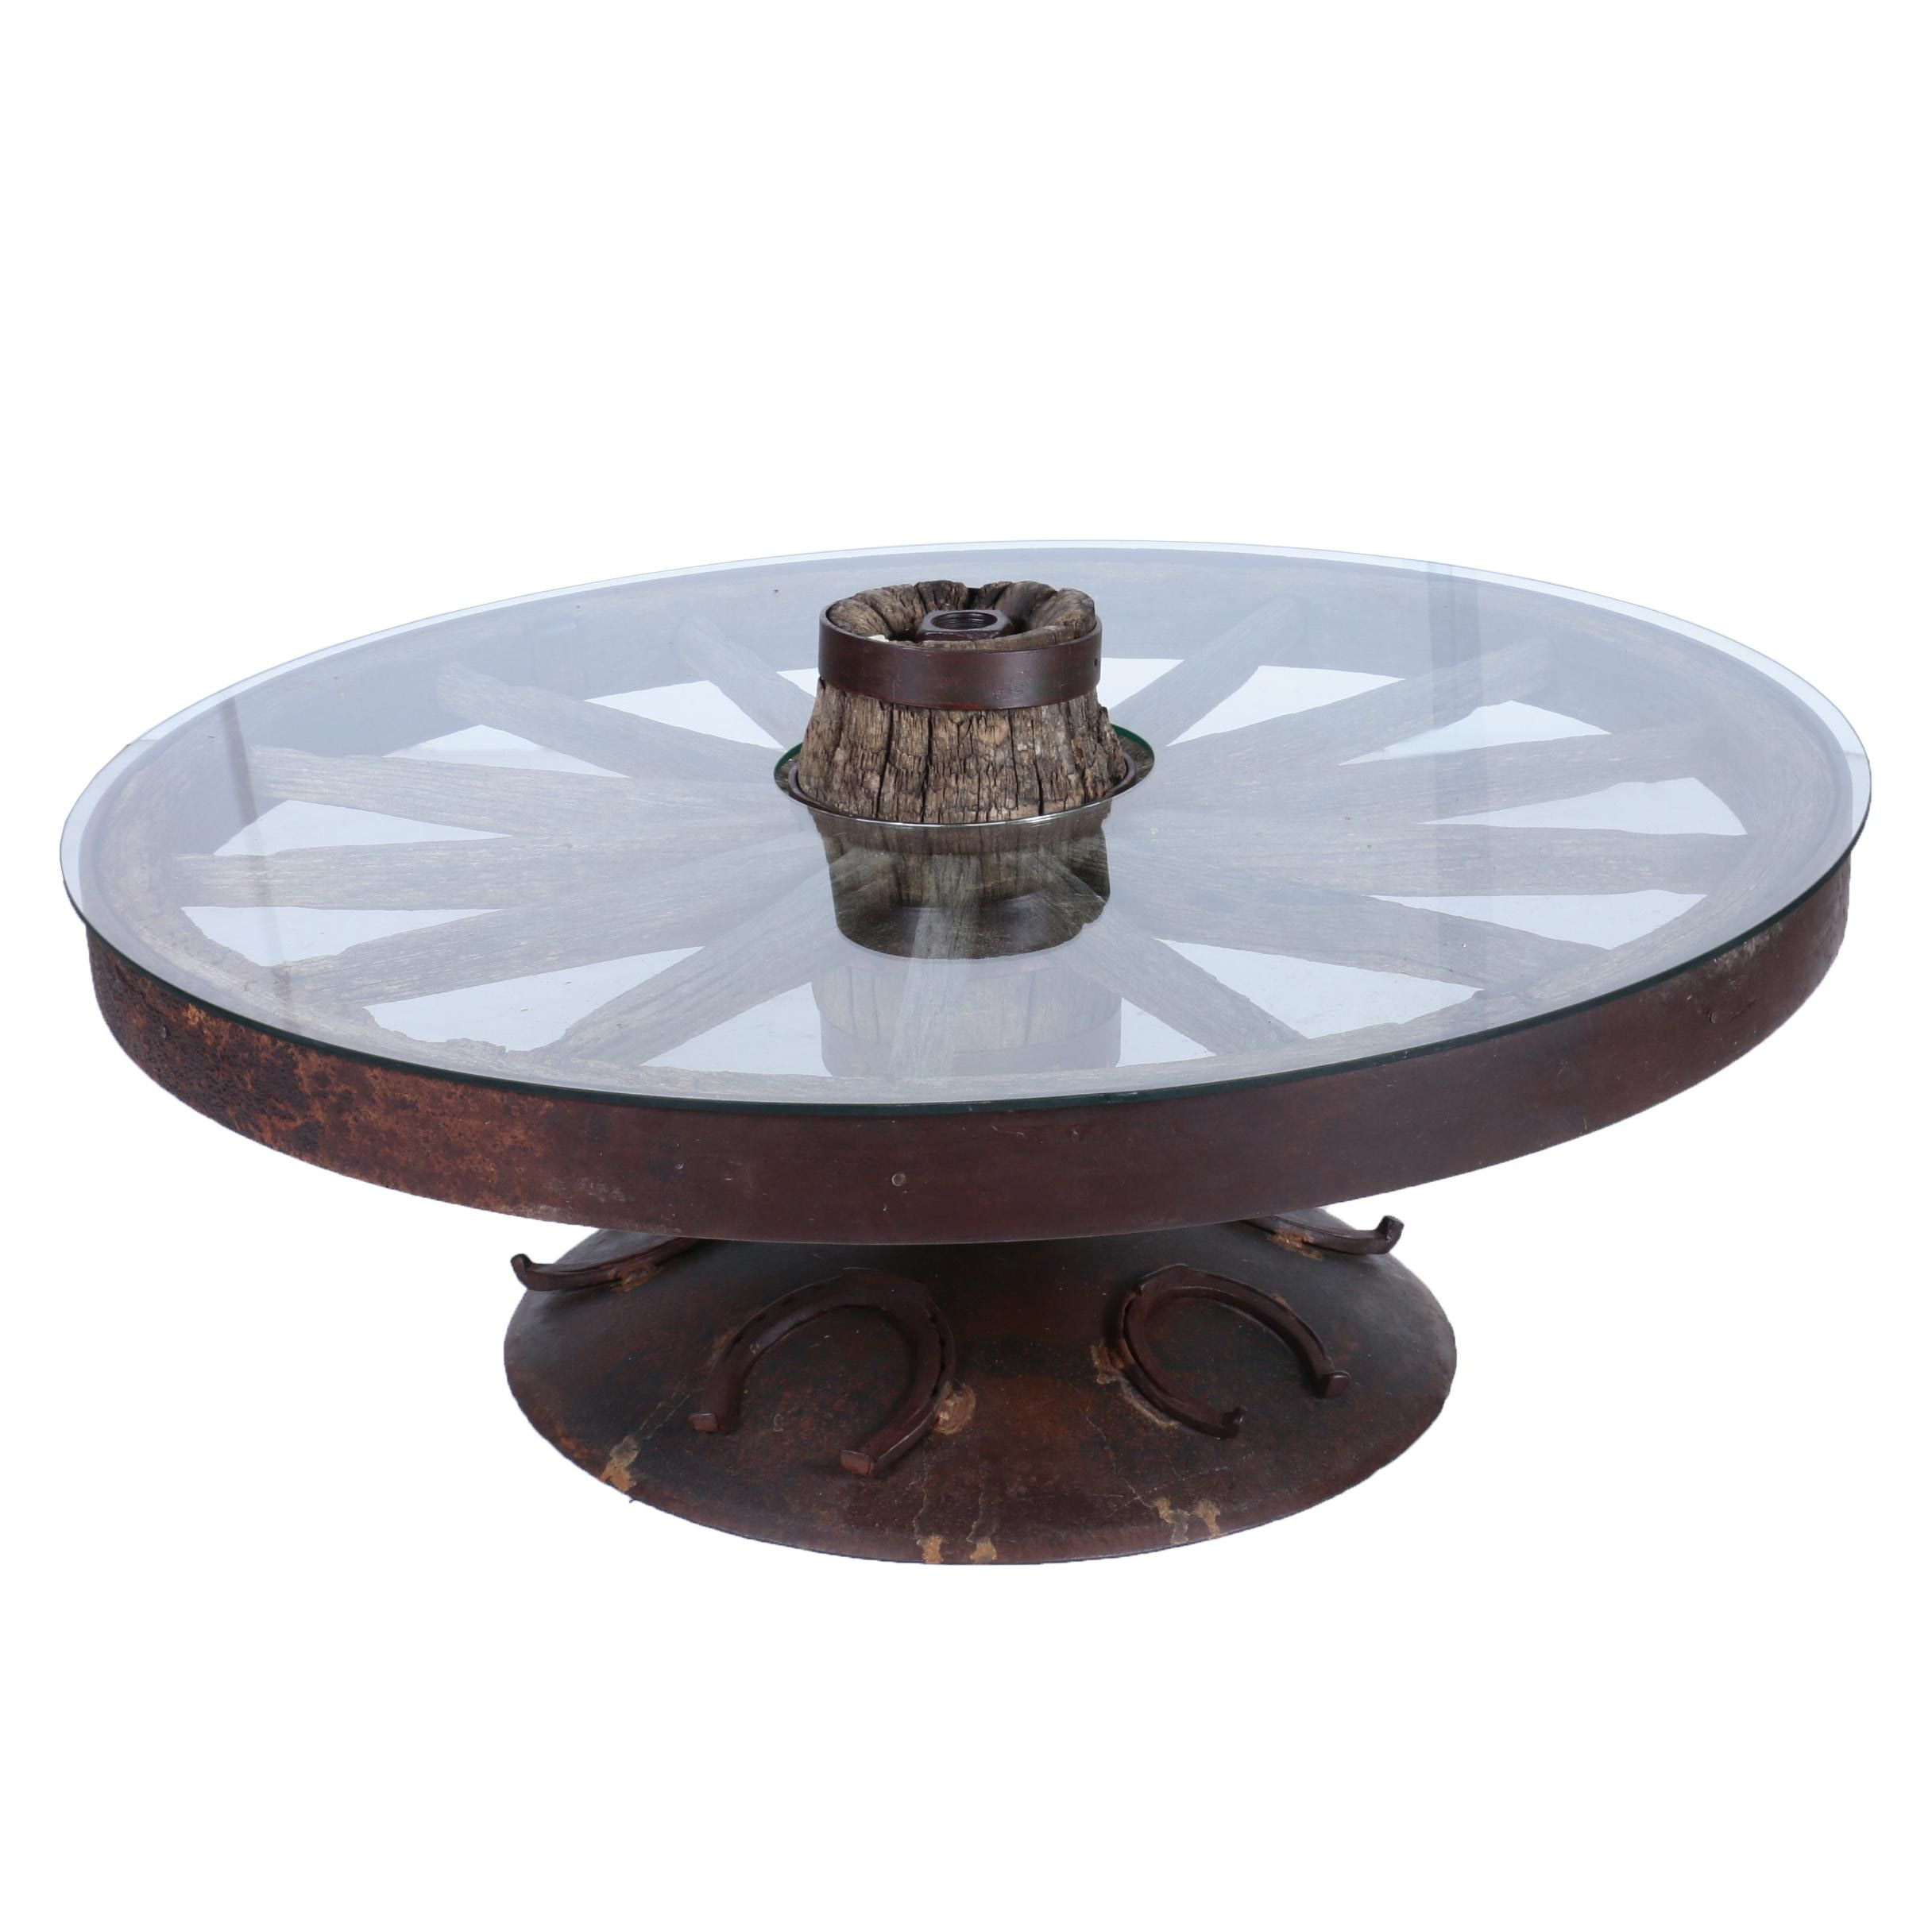 Custom-Made Coffee Table with Glass Top and Antique Iron and Wood Wagon Wheel